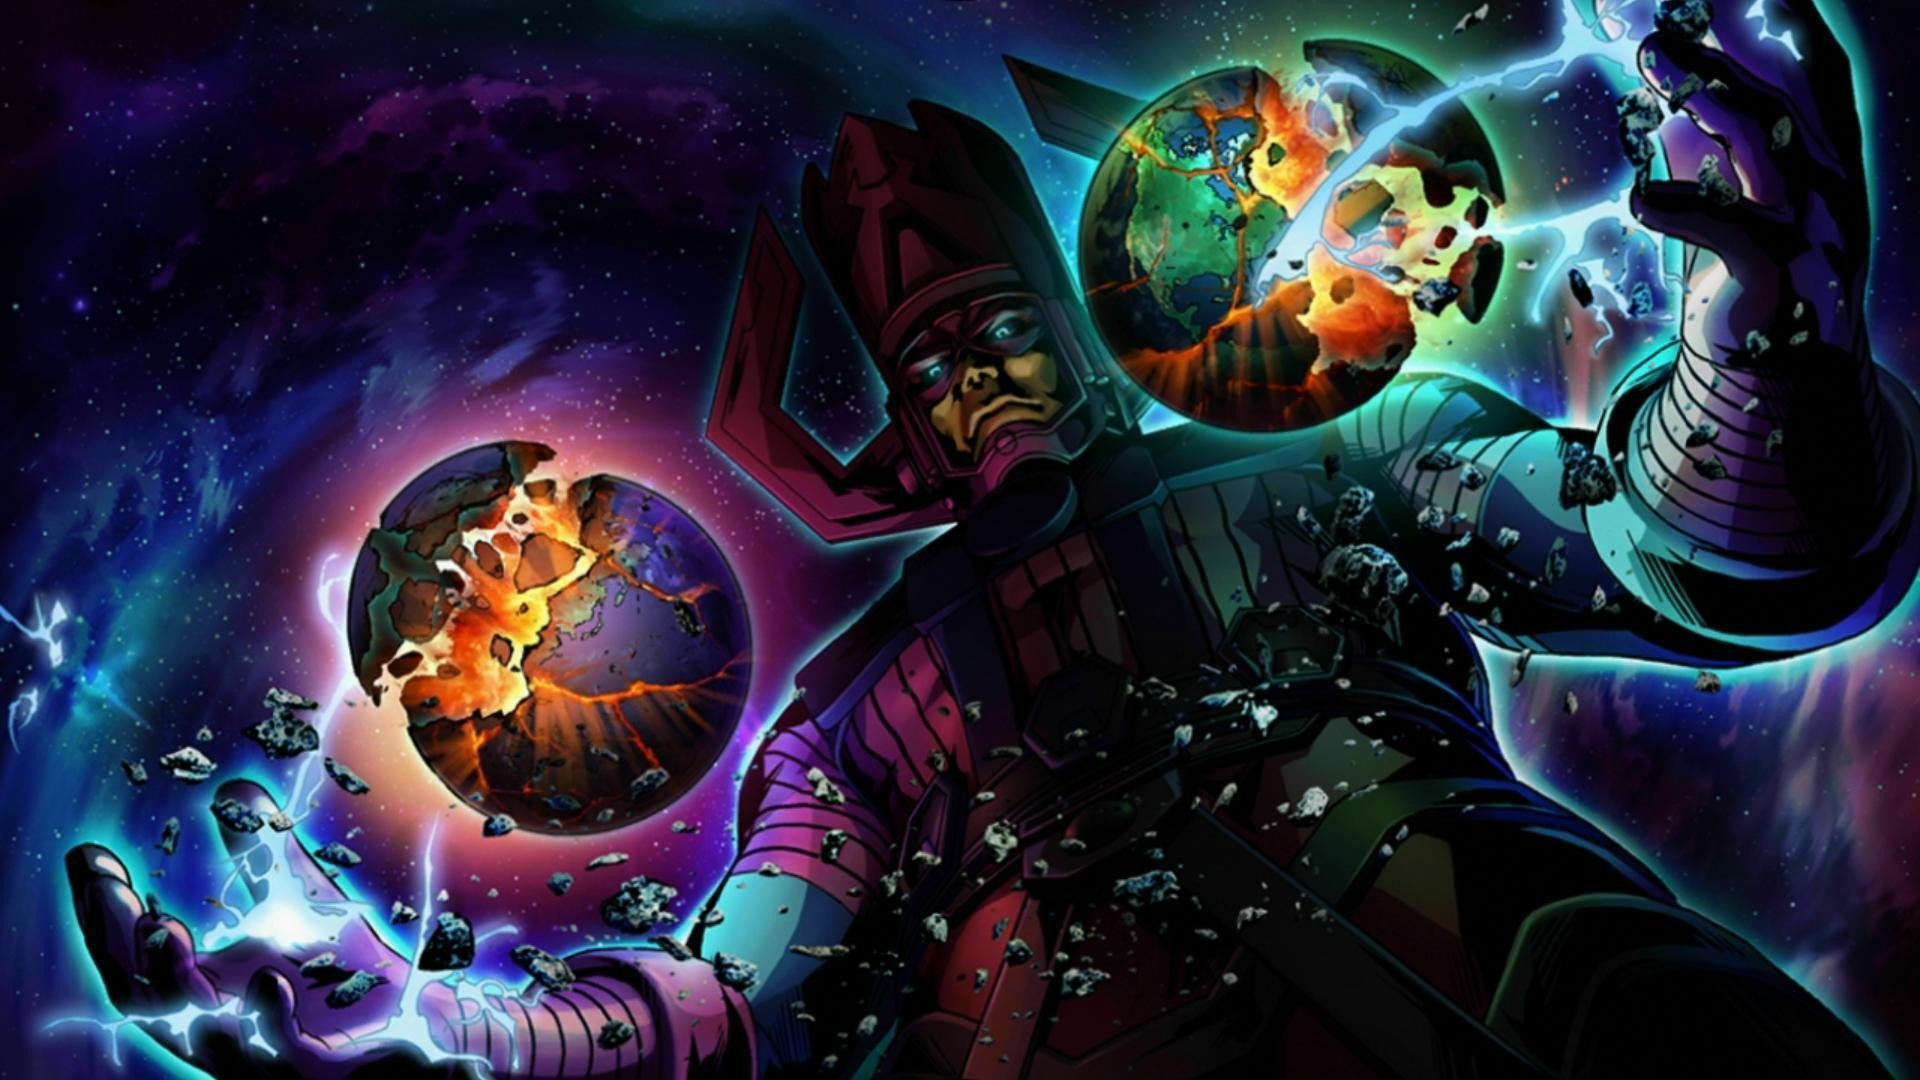 Res: 1920x1080, Galactus vs An army of street levellers. - Battles - Comic Vine